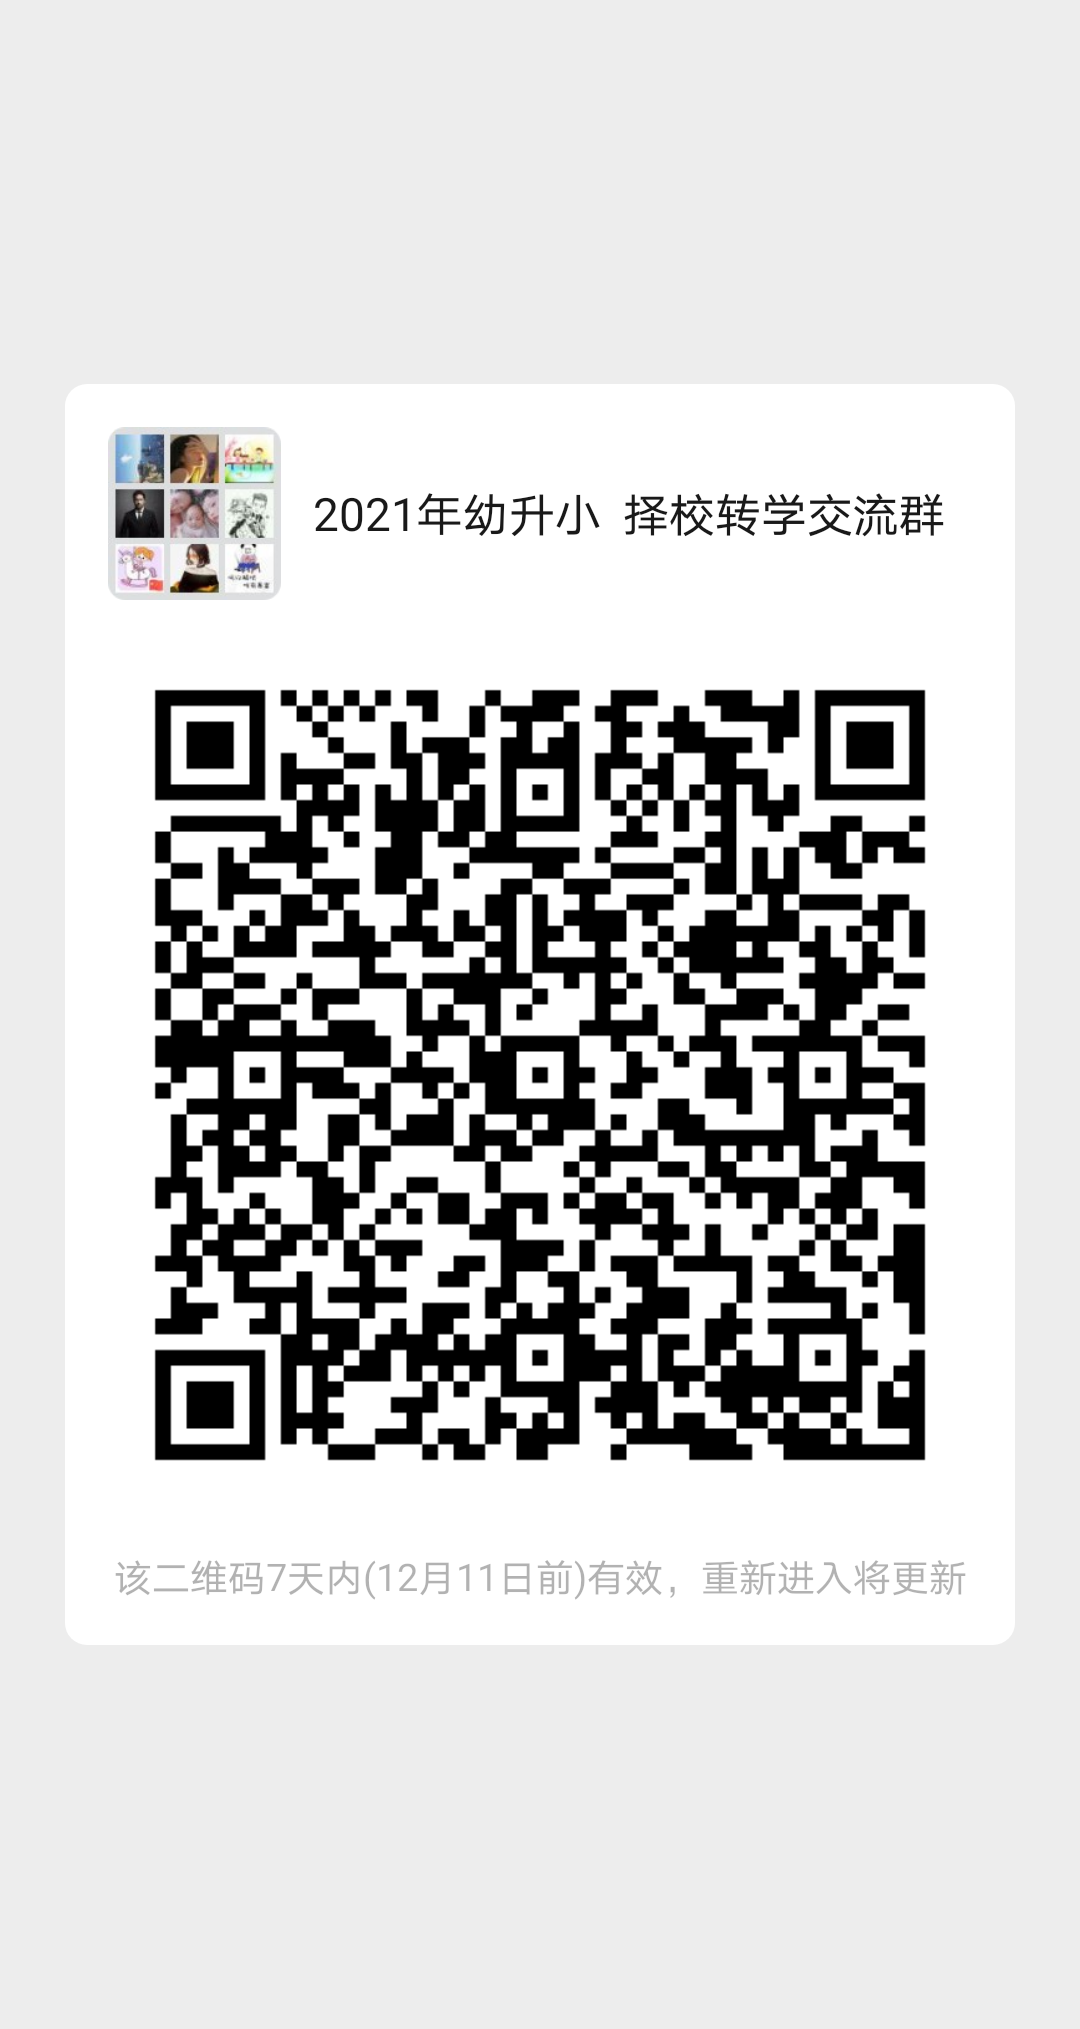 mmqrcode1607043836020.png